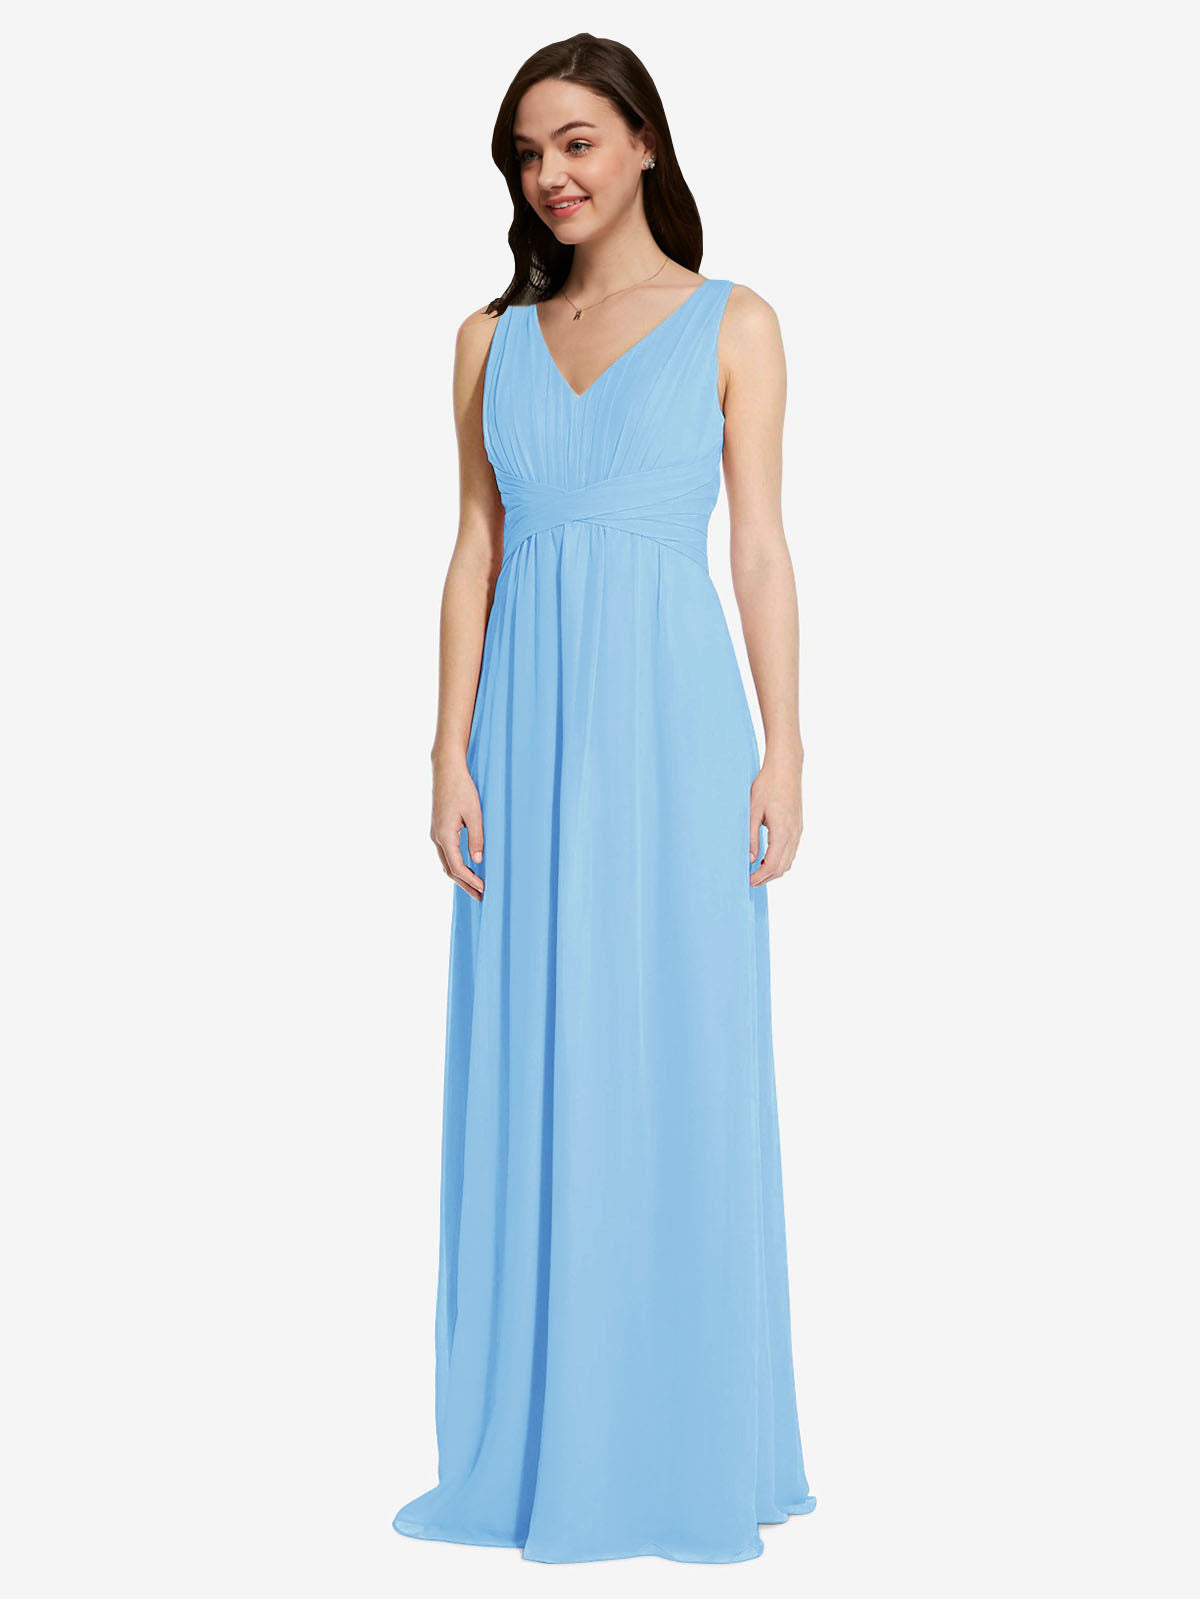 Long A-Line V-Neck Sleeveless Periwinkle Chiffon Bridesmaid Dress Auckland